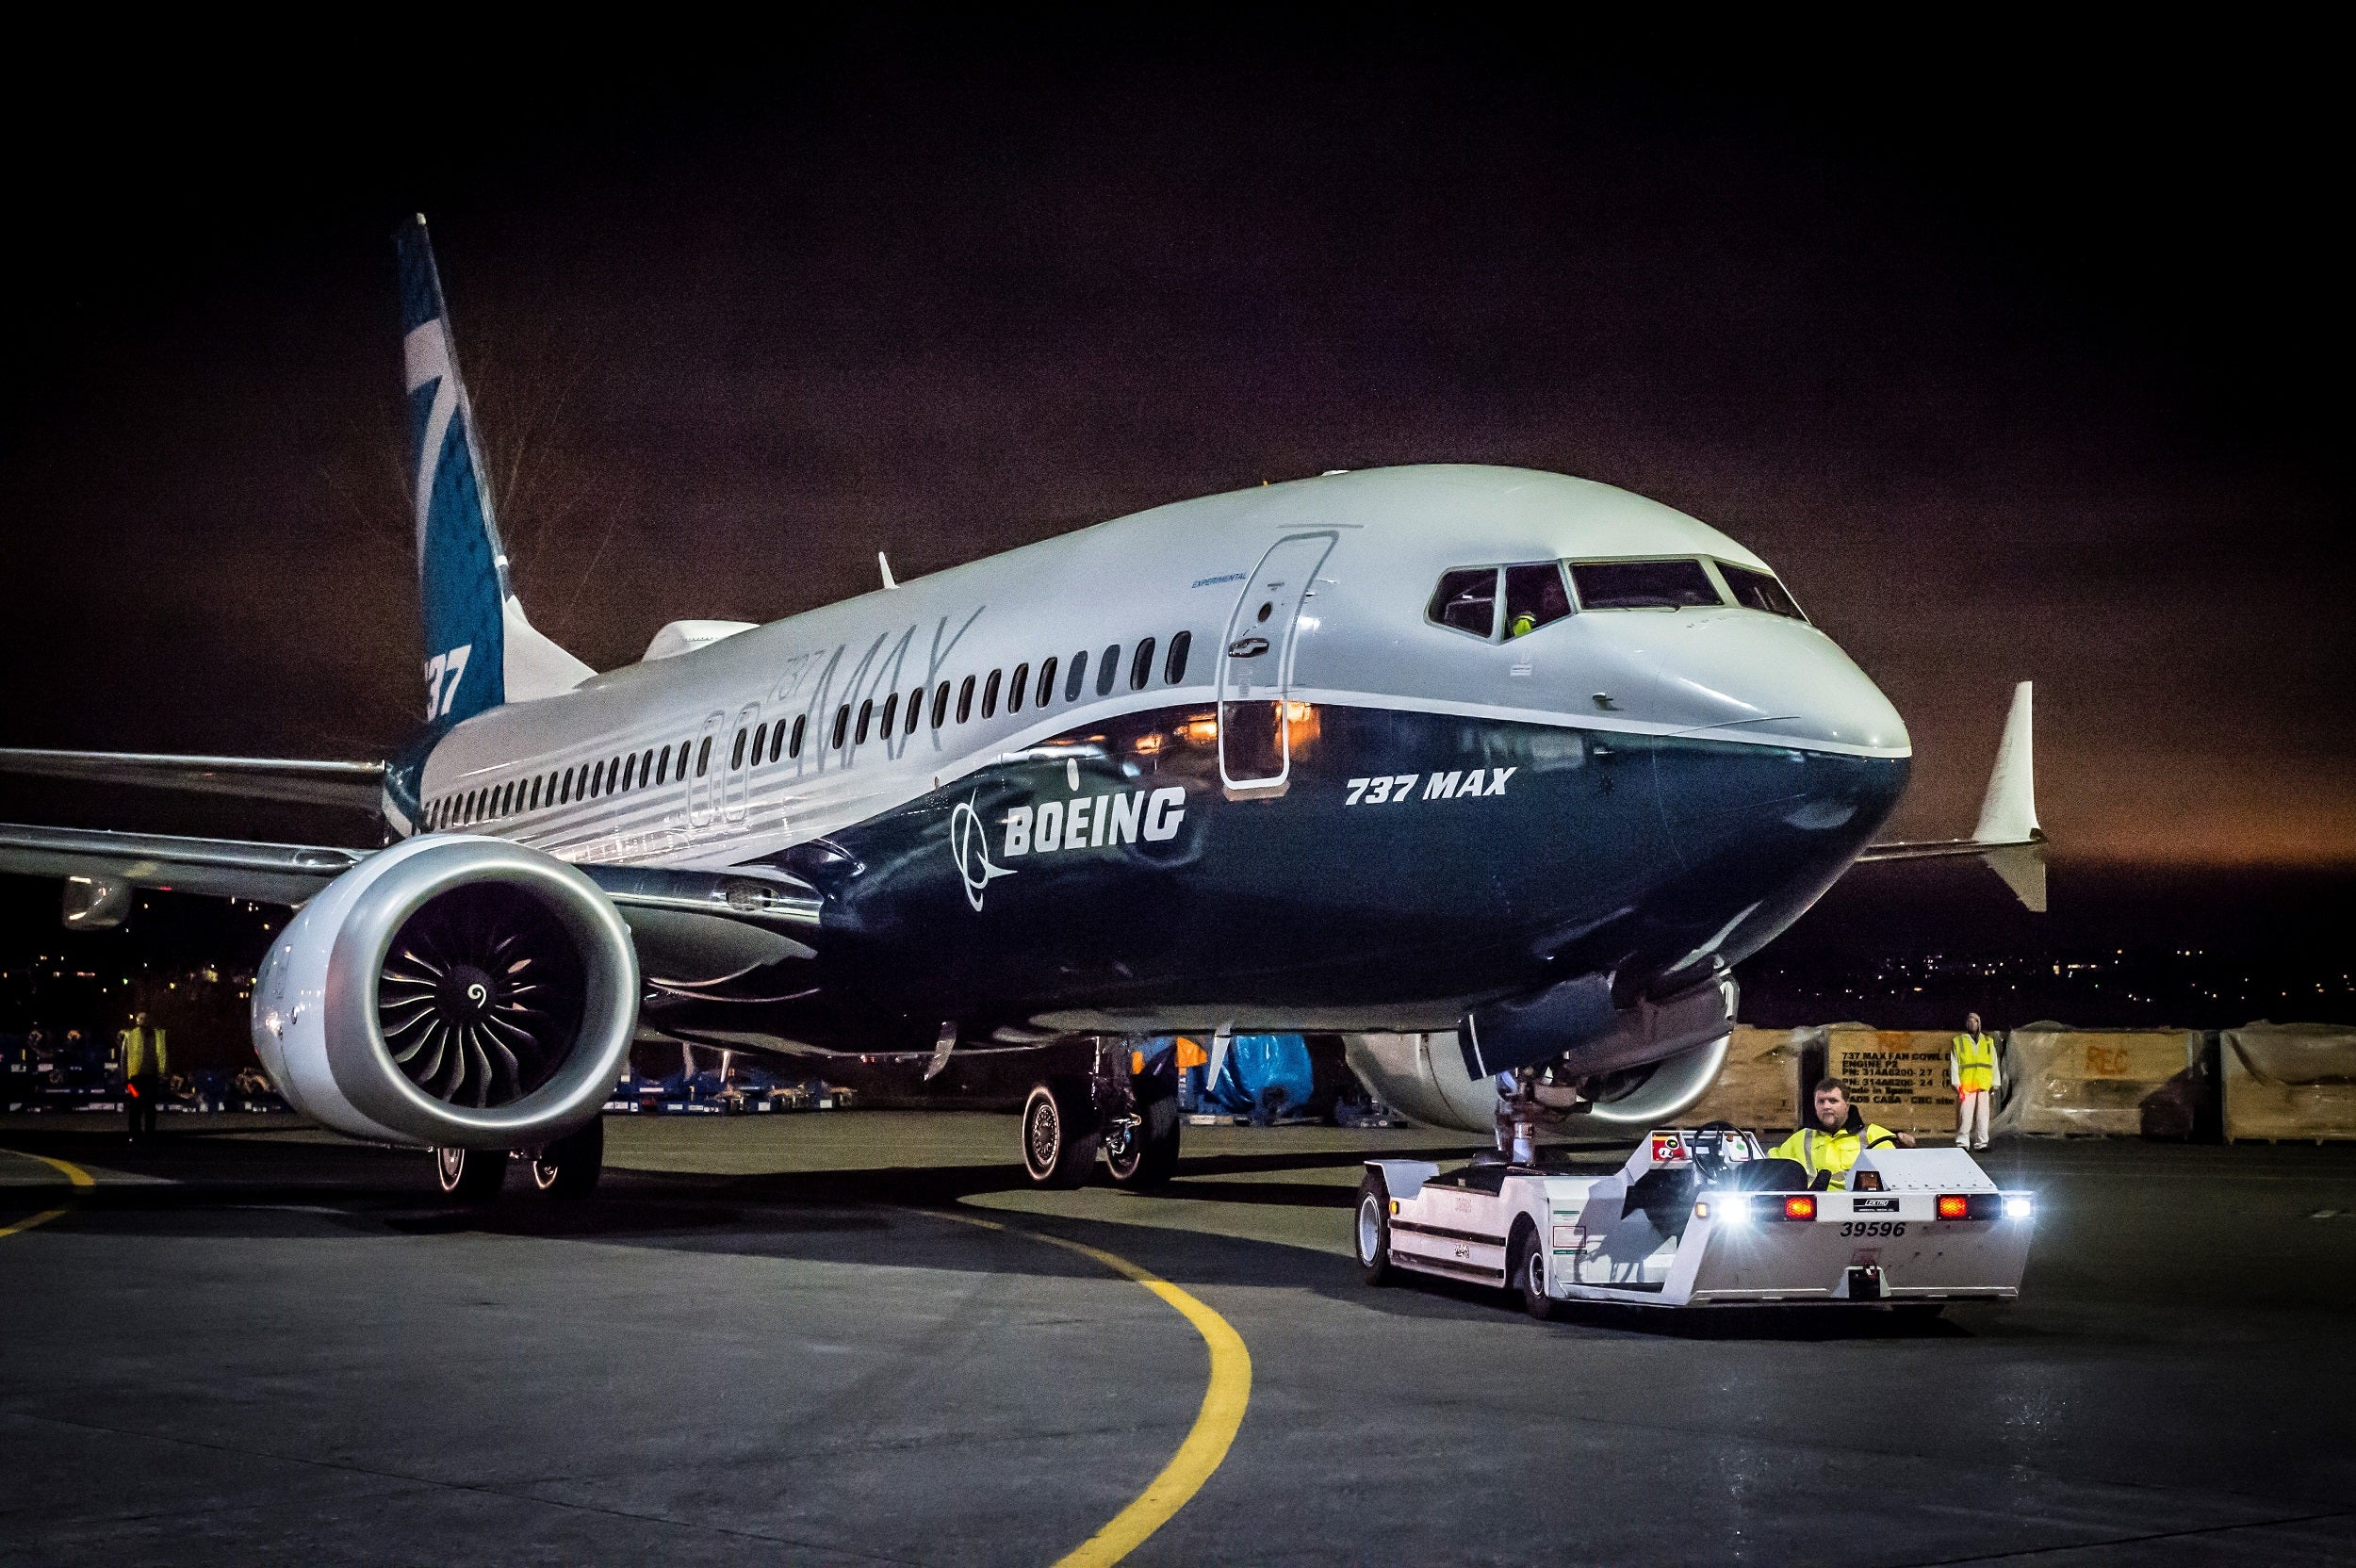 Boeing To Pay 2 5 Billion To Settle 737 Max Criminal Probe The Motley Fool